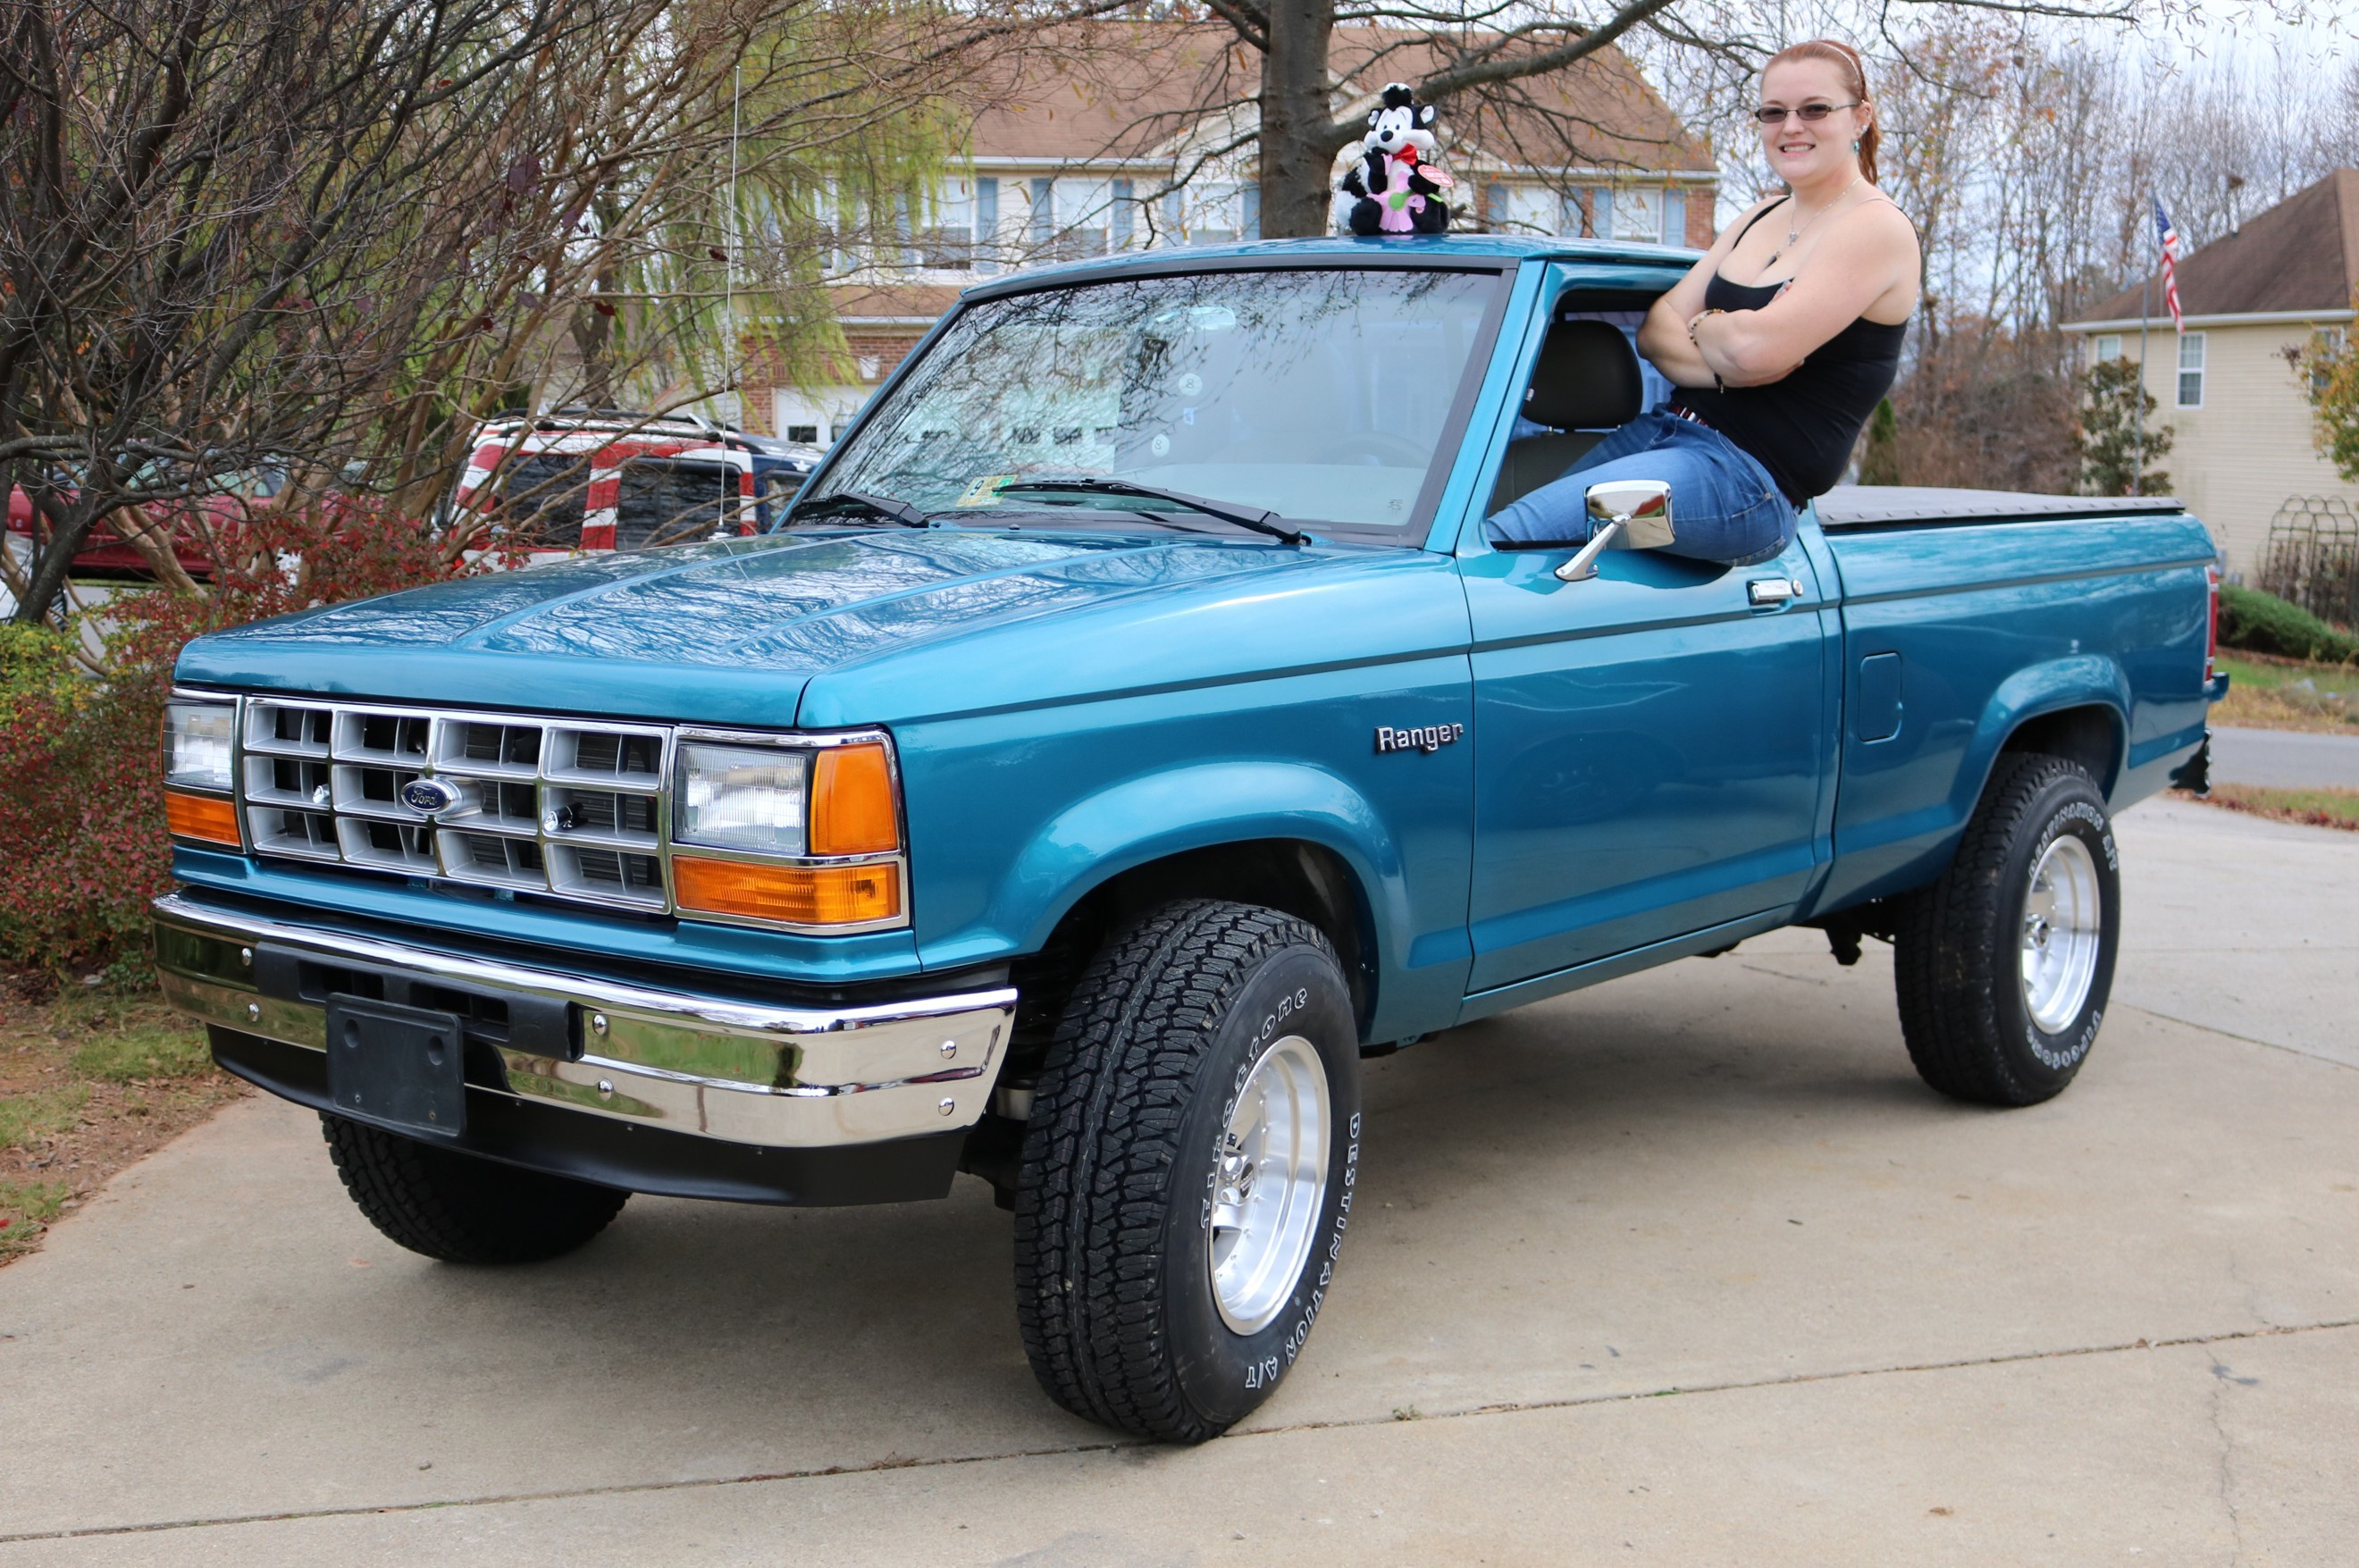 This 1989 ford ranger was purchased as my daughters first vehicle in feb 2008 it didnt look this good when we bought it but the idea was that if she put